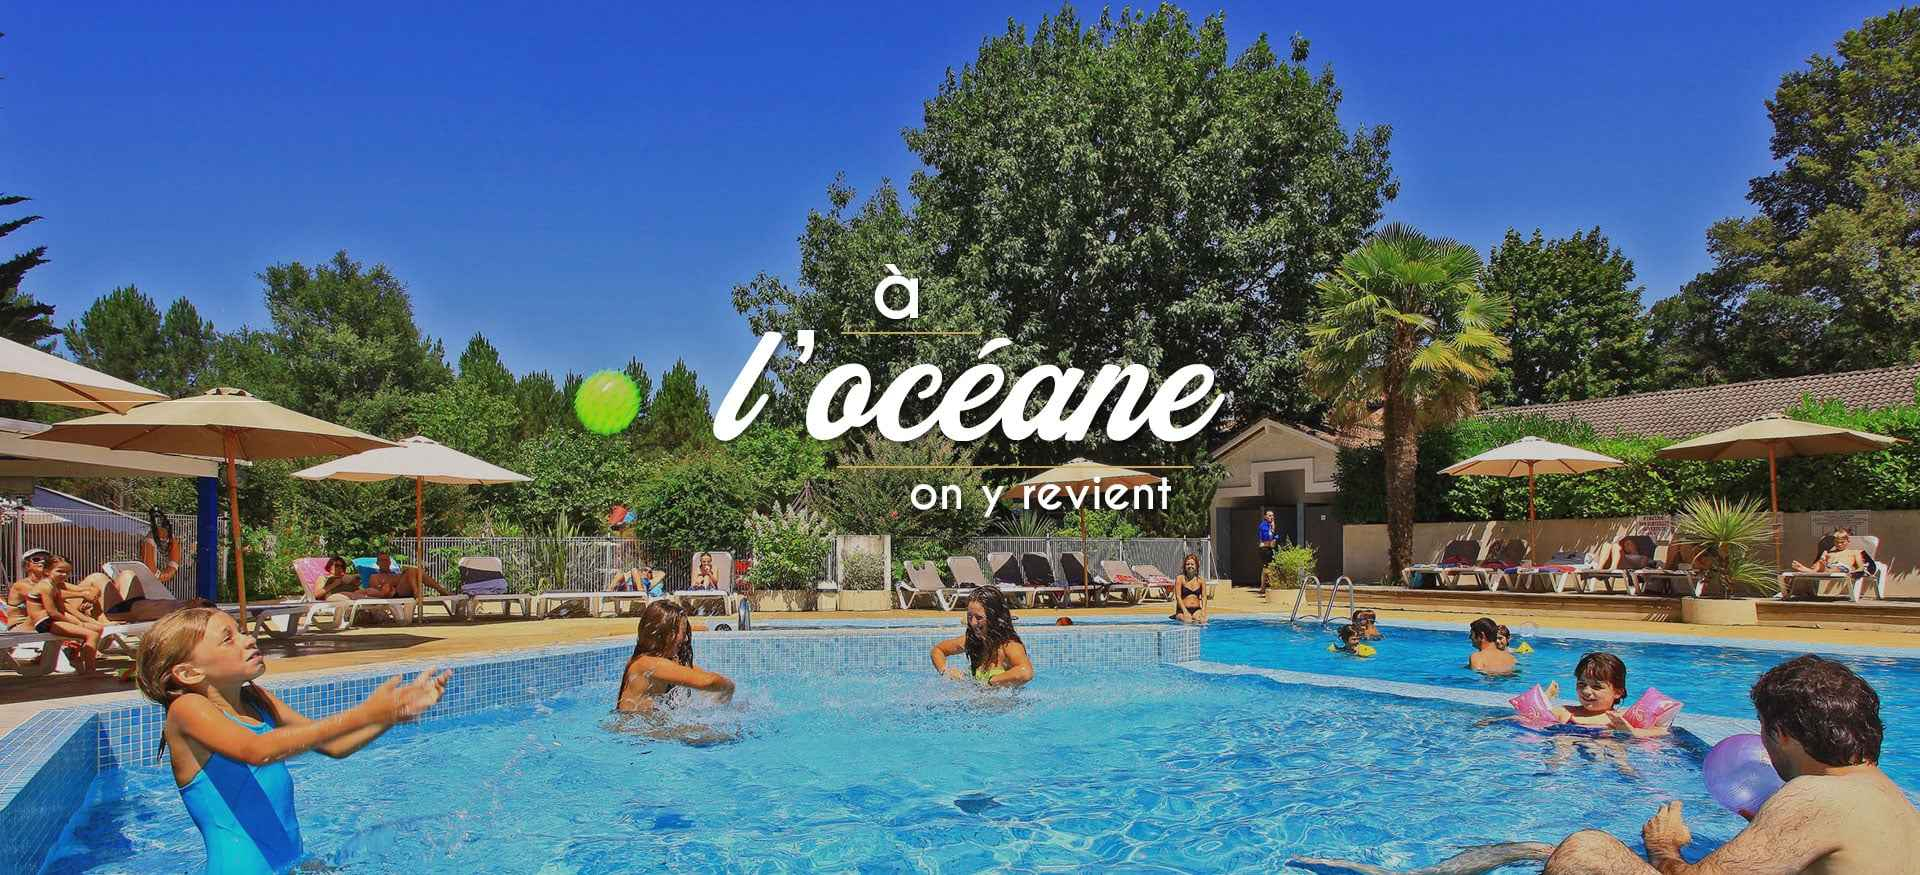 Camping Landes ****, Camping Familial Avec Piscine Chauffée ... tout Camping Landes Avec Piscine